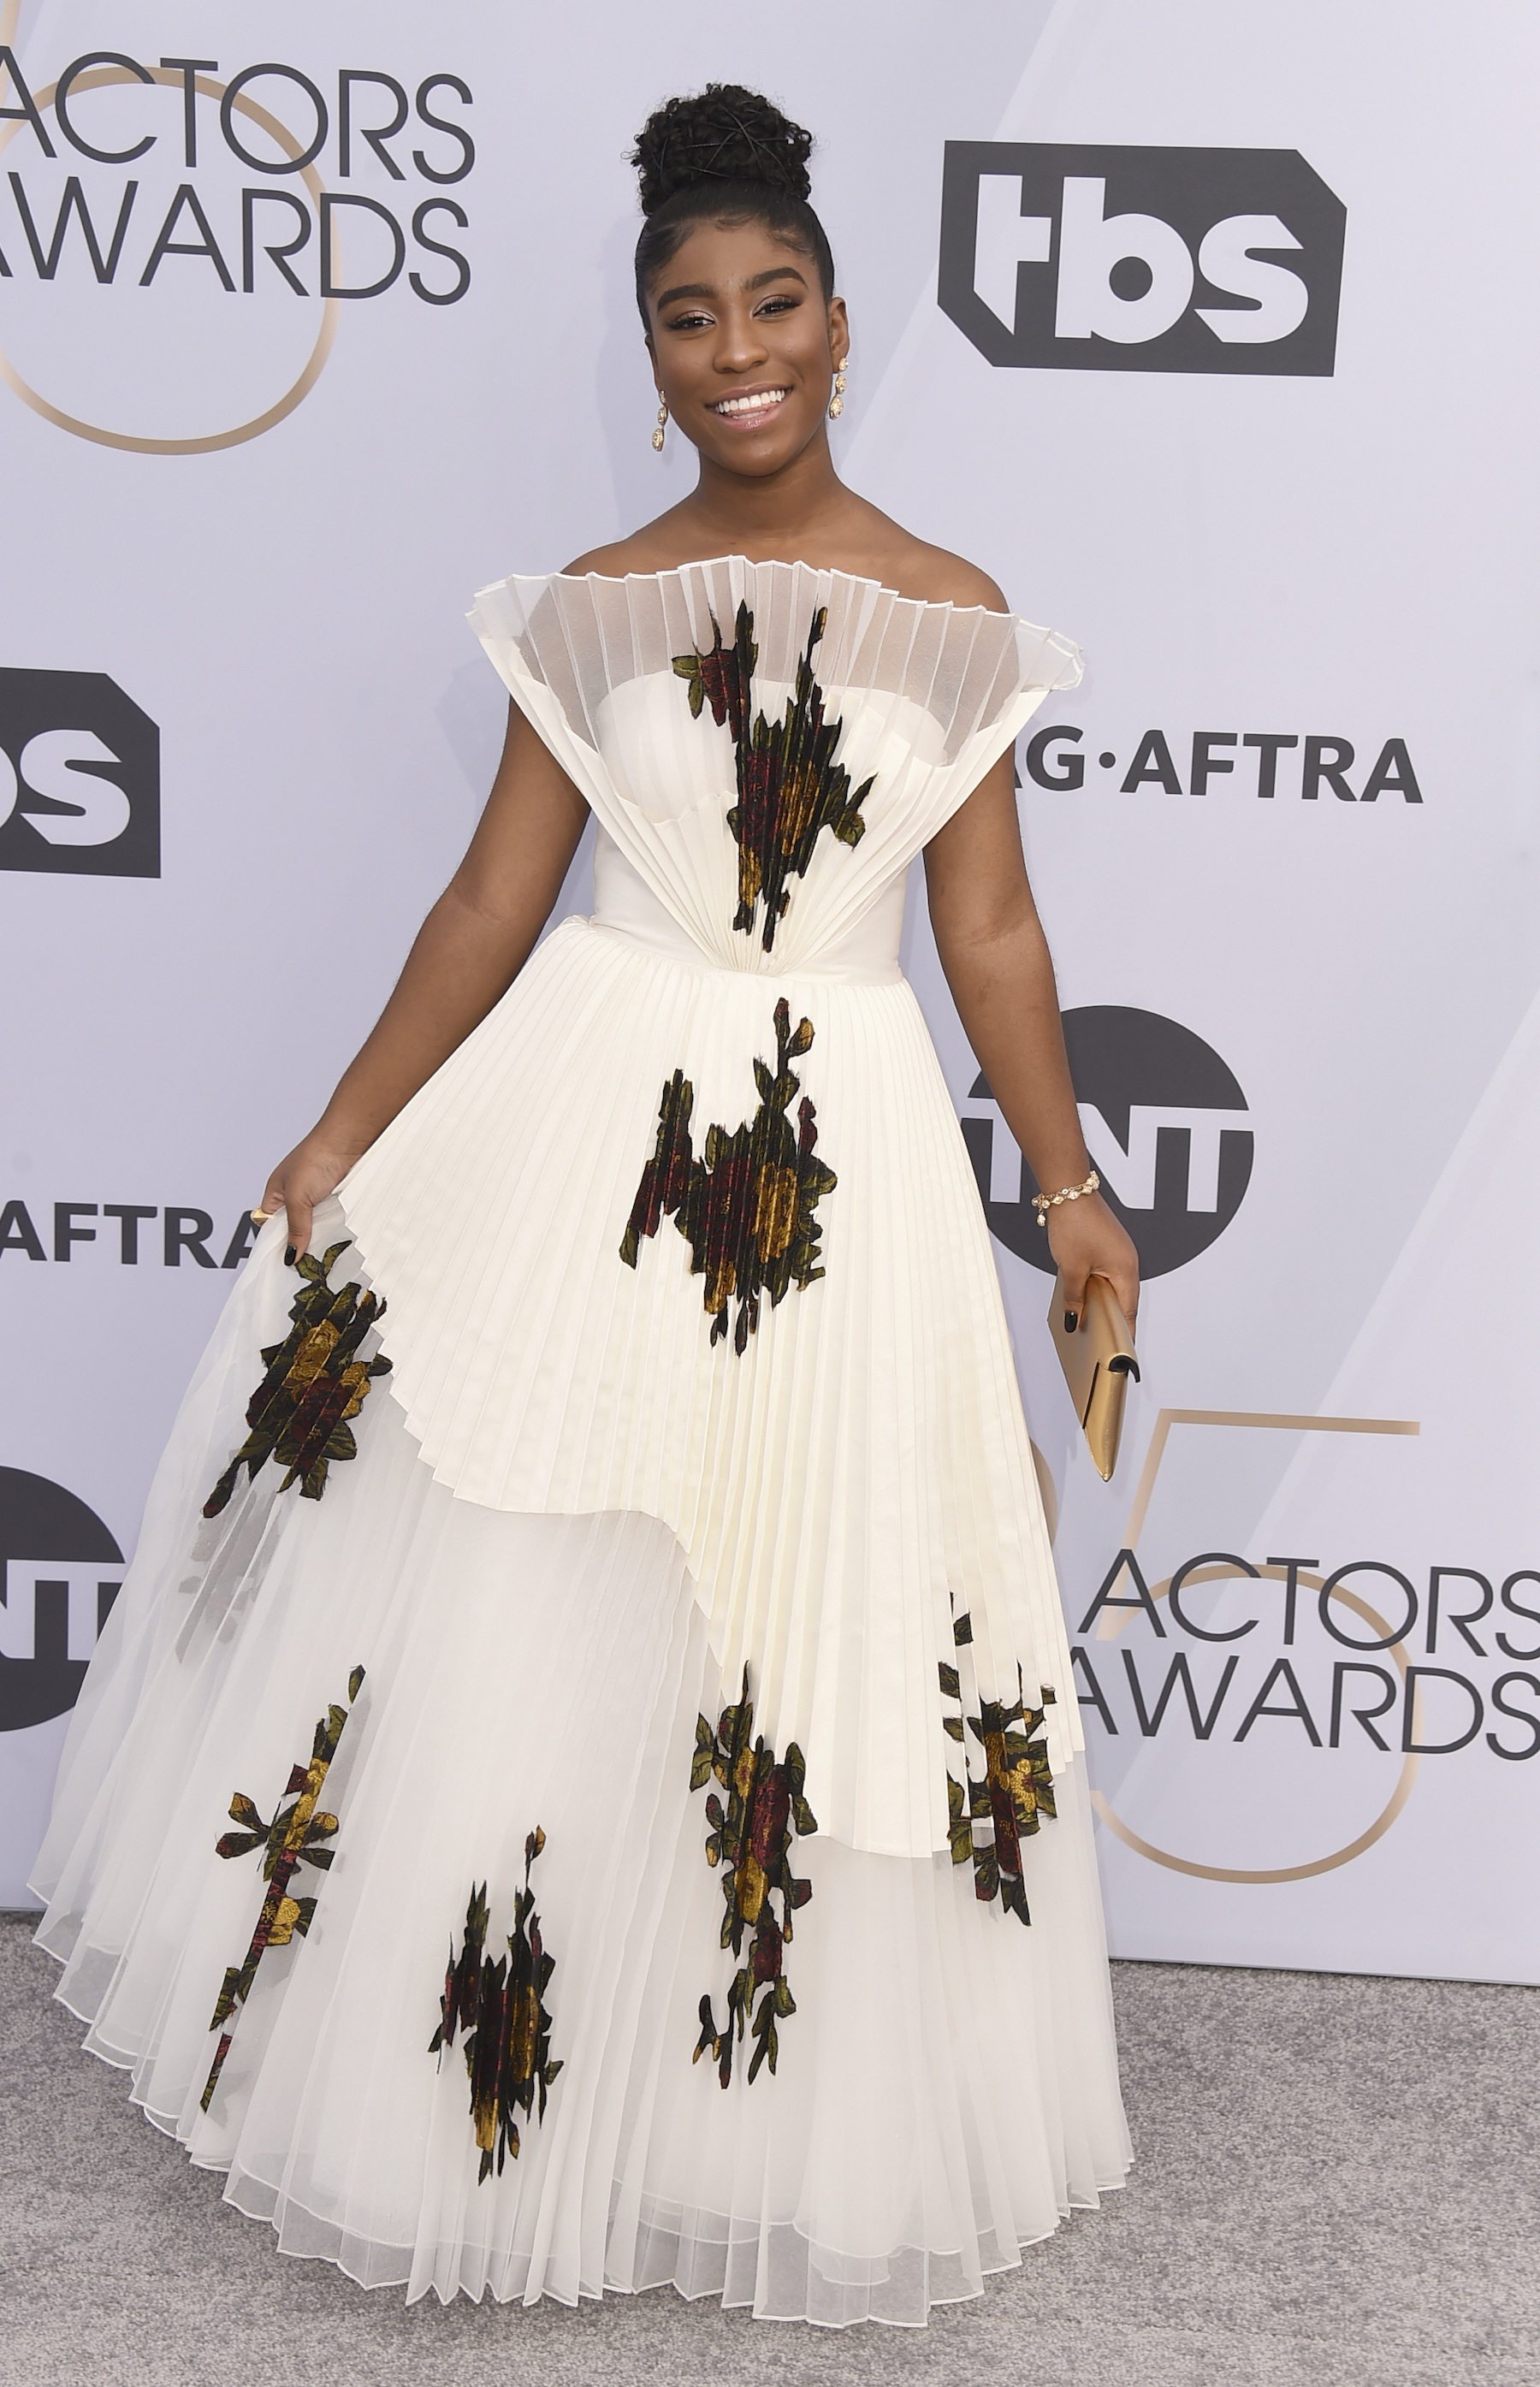 <div class='meta'><div class='origin-logo' data-origin='AP'></div><span class='caption-text' data-credit='Jordan Strauss/Invision/AP'>Lyric Ross arrives at the 25th annual Screen Actors Guild Awards at the Shrine Auditorium & Expo Hall on Sunday, Jan. 27, 2019, in Los Angeles.</span></div>